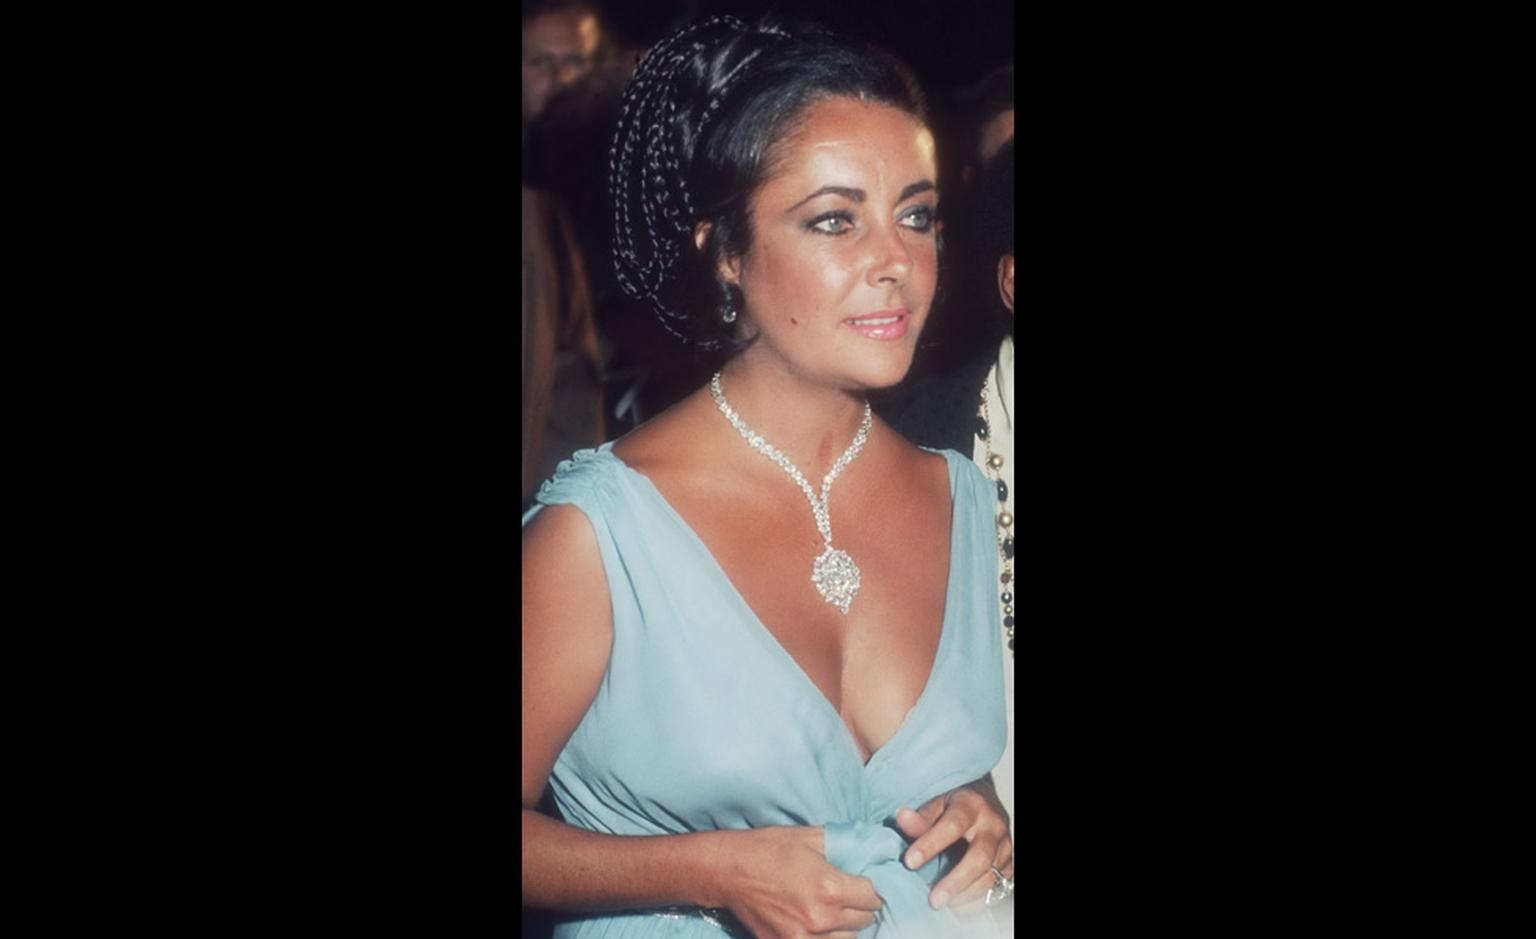 "At the 1974 premiere of ""That's Entertainment"" wearing the Van Cleef & Arpels brooch as a necklace, given to her by Richard Burton and one of the most valuable pieces with a $1,500,000 price tag when he bought it in 1969."